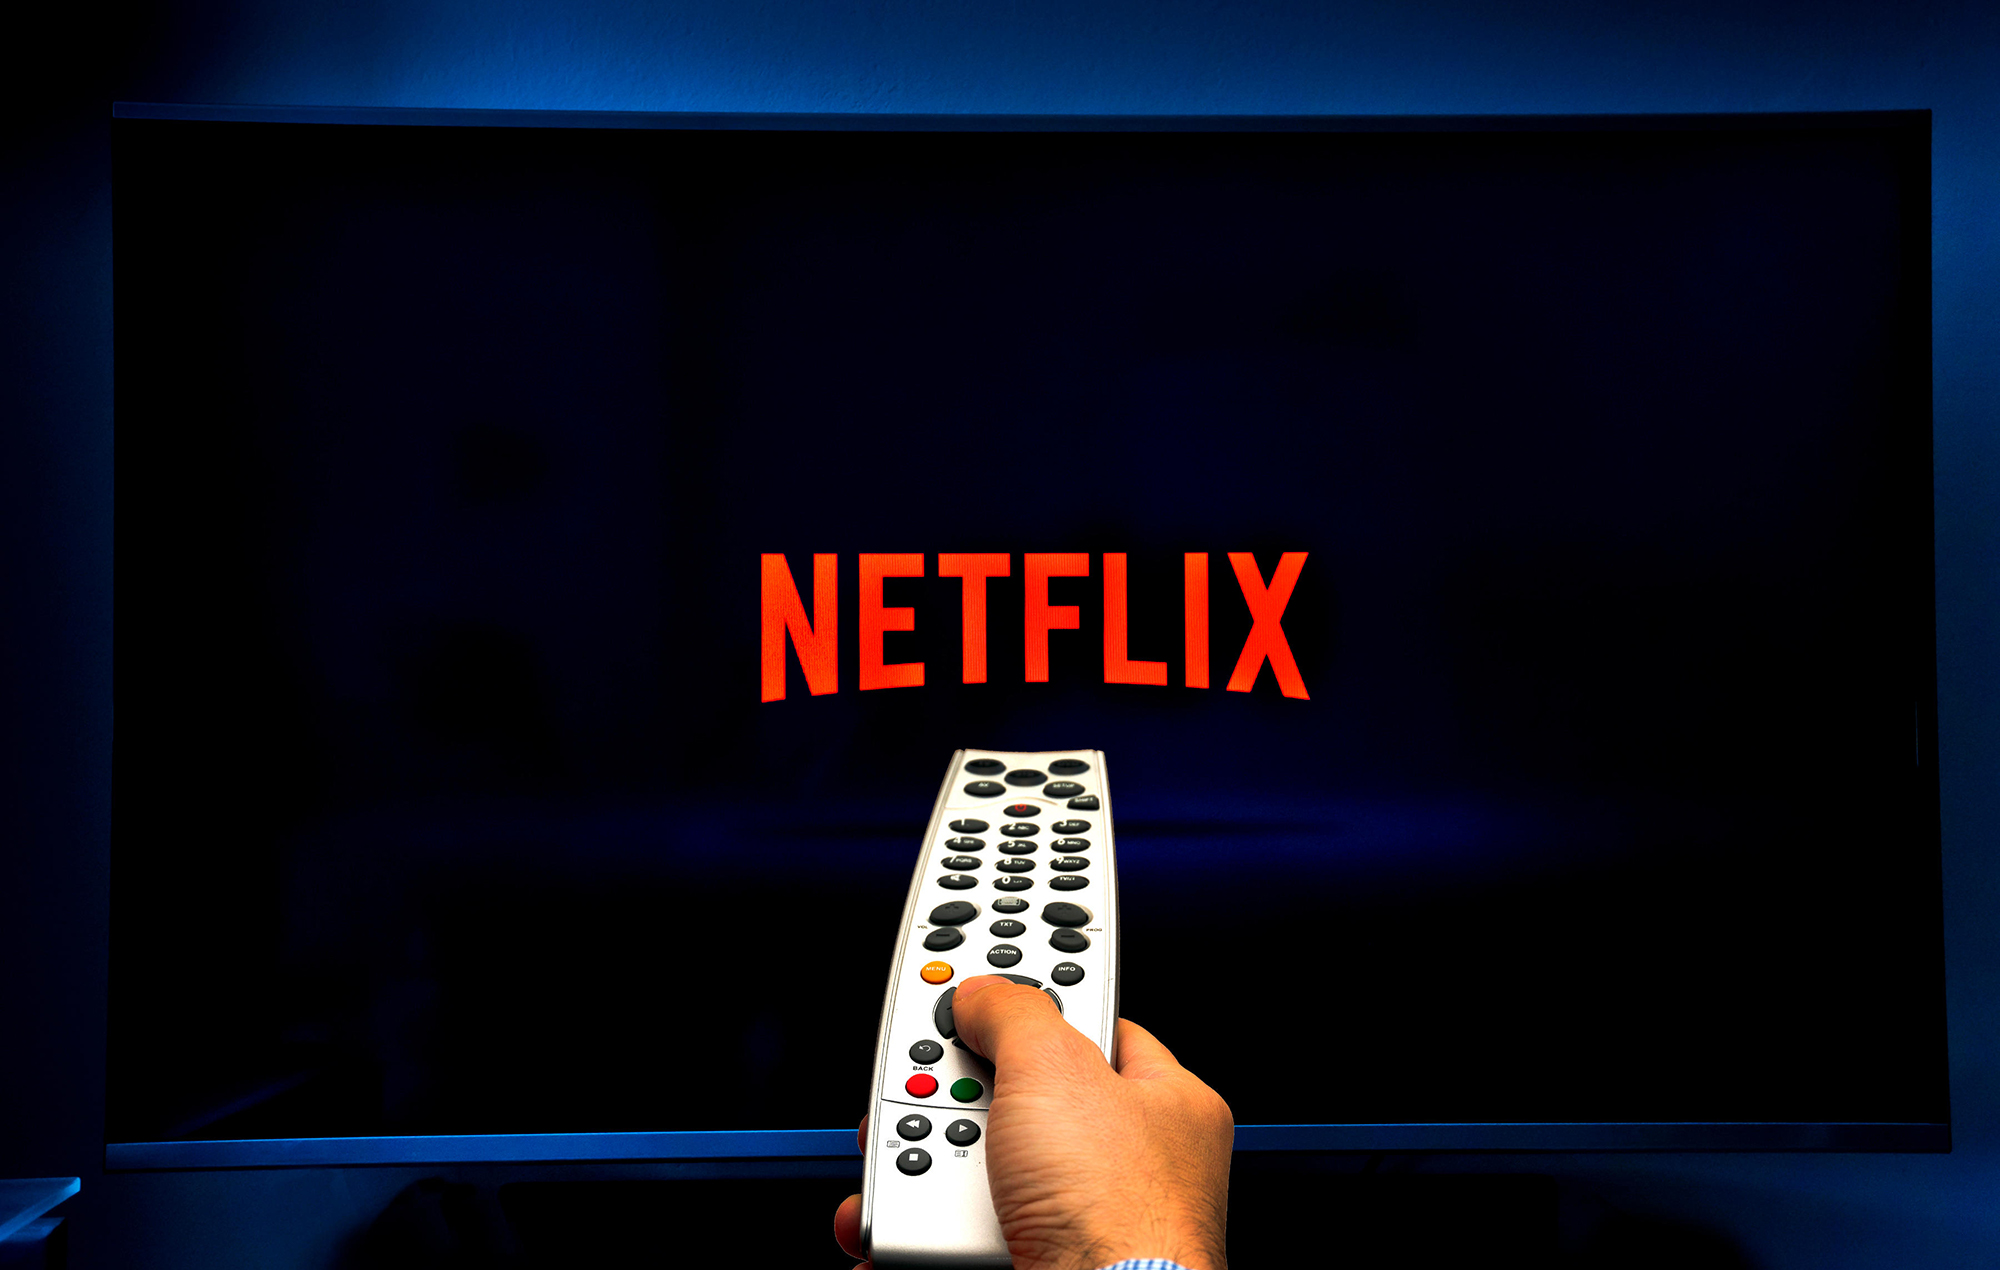 Netflix's new feature auto-downloads shows based on what you like